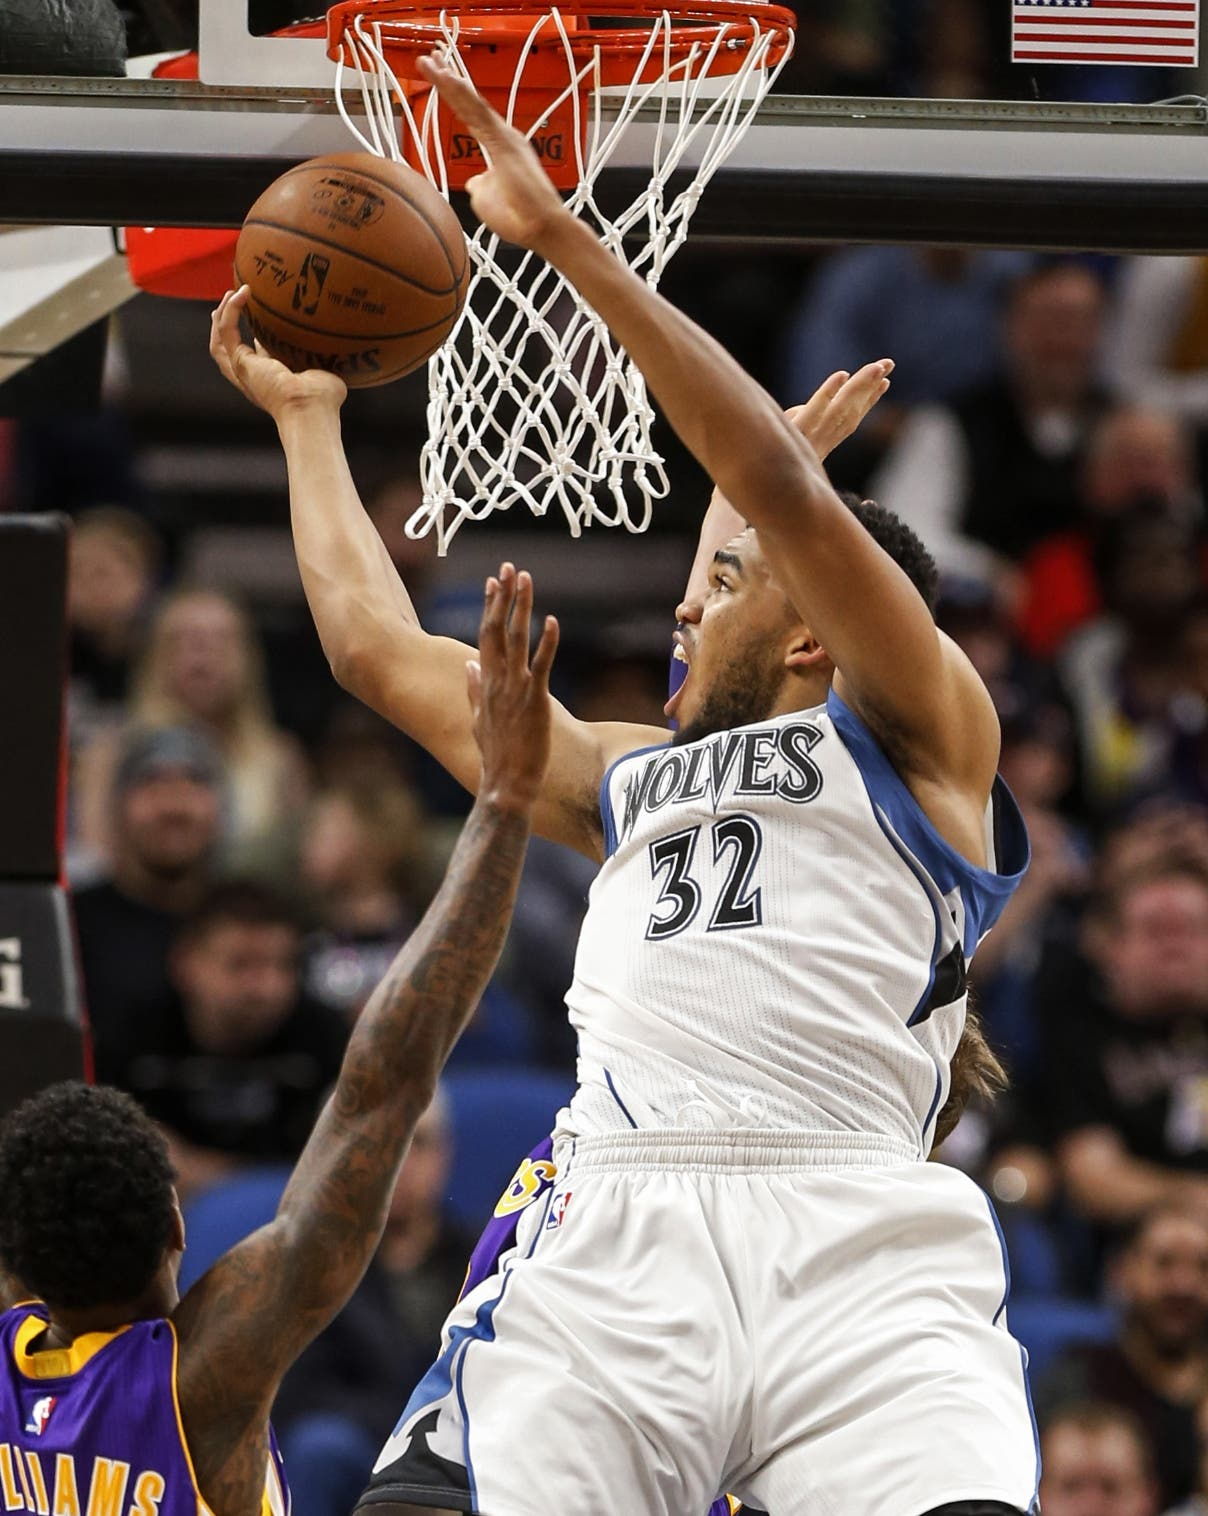 Minnesota Timberwolves center Karl-Anthony Towns (32) shoots against the Los Angeles Lakers in the second half of an NBA basketball game Sunday, Nov. 13, 2016, in Minneapolis. The Timberwolves won 125-99. (AP Photo/Bruce Kluckhohn)